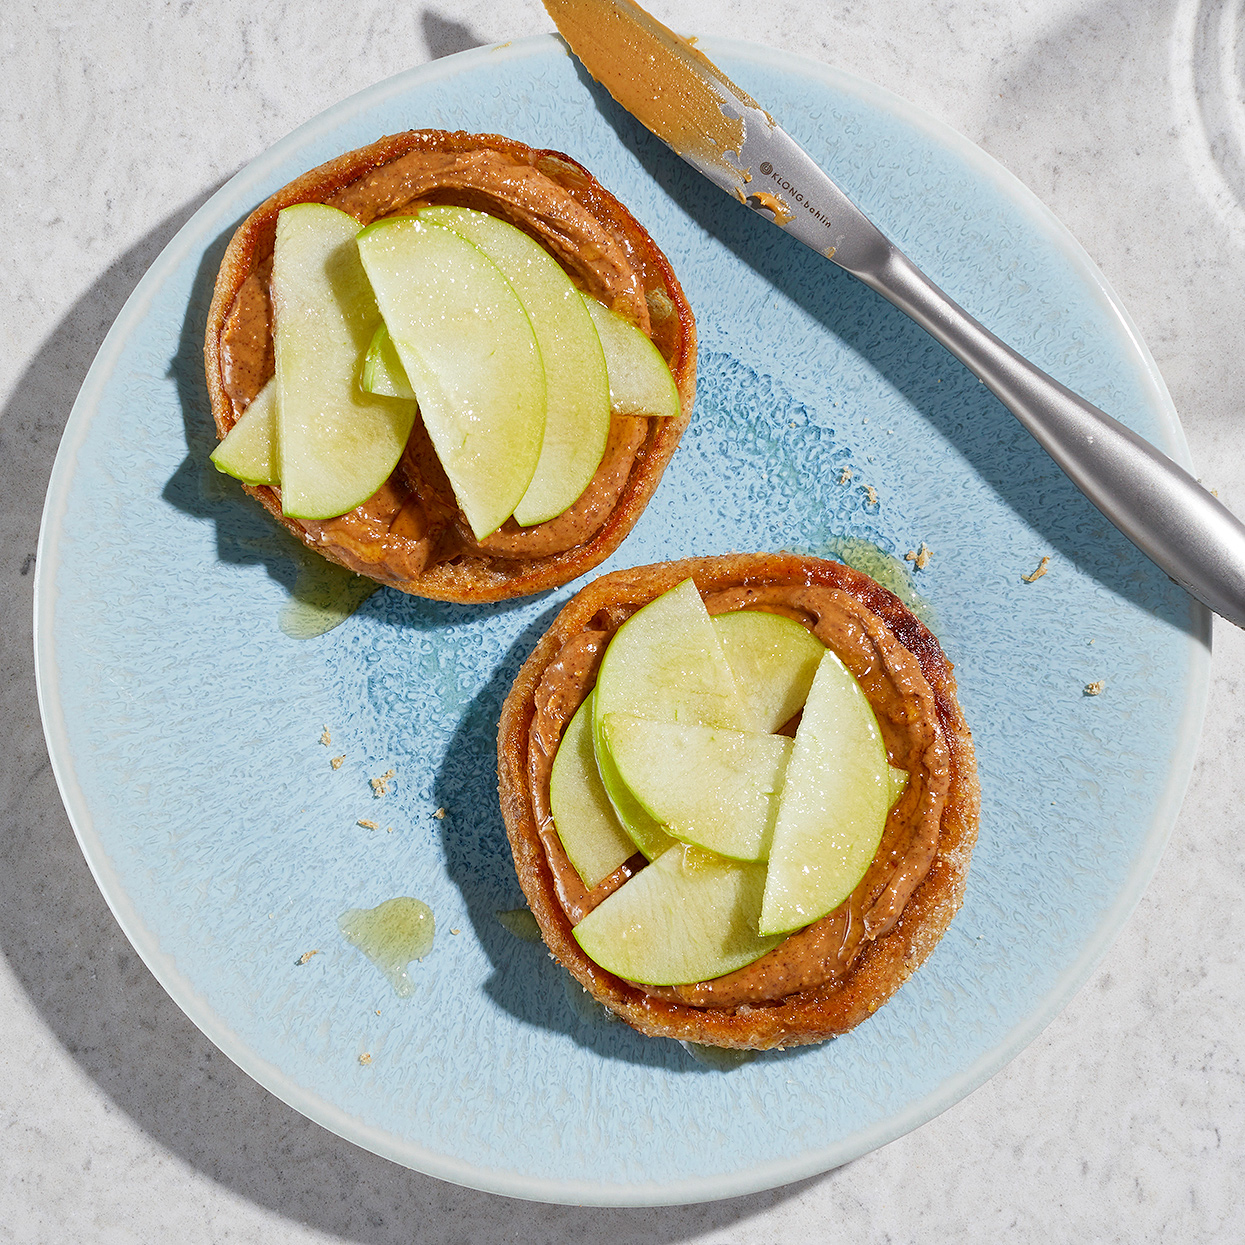 Apple and Almond Butter English Muffin